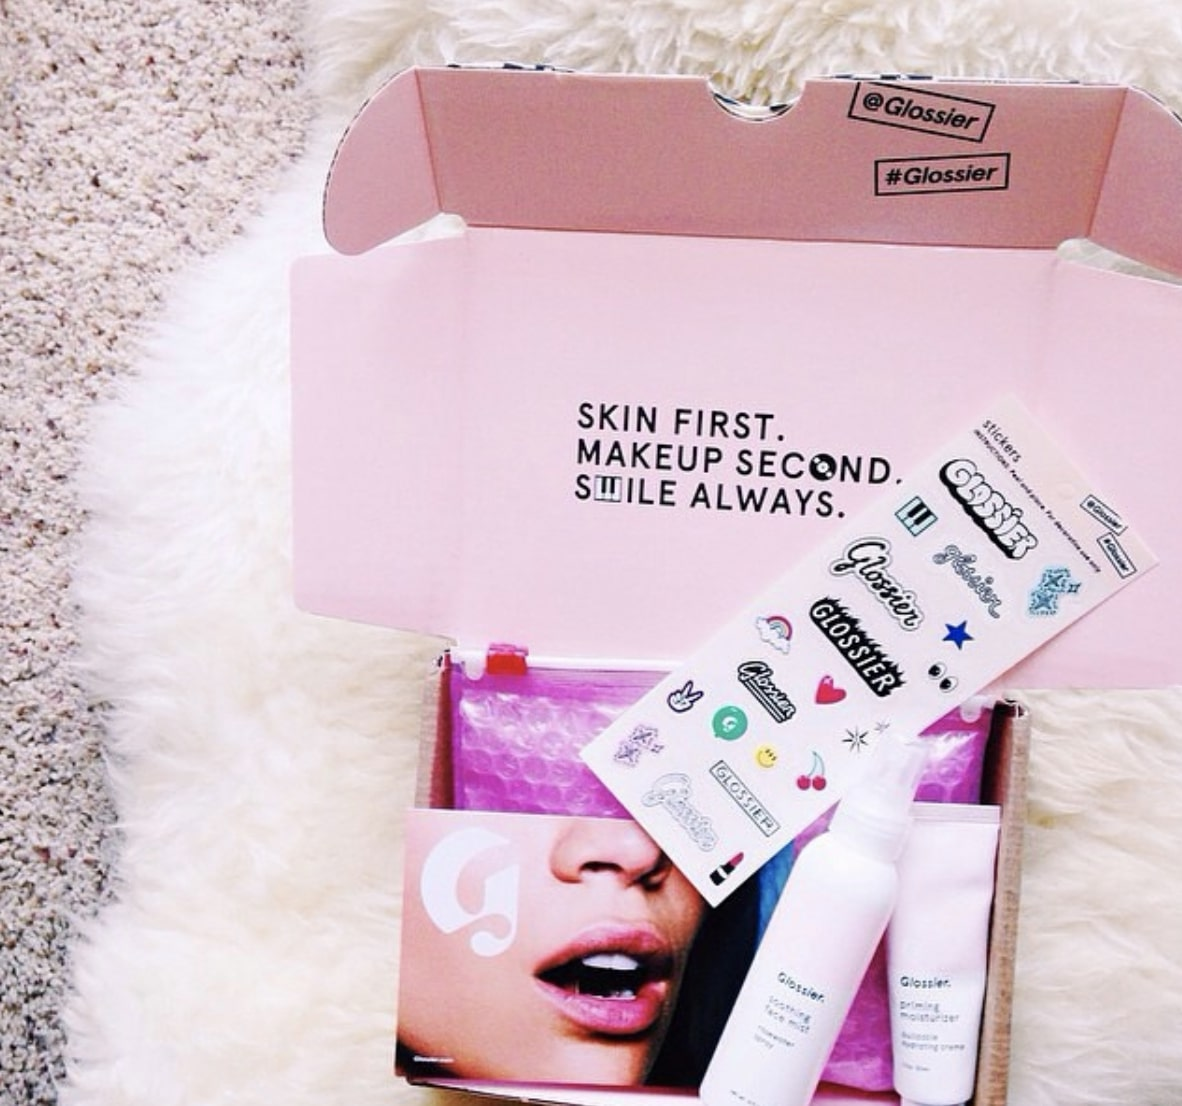 Branded eCommerce packaging by Glossier